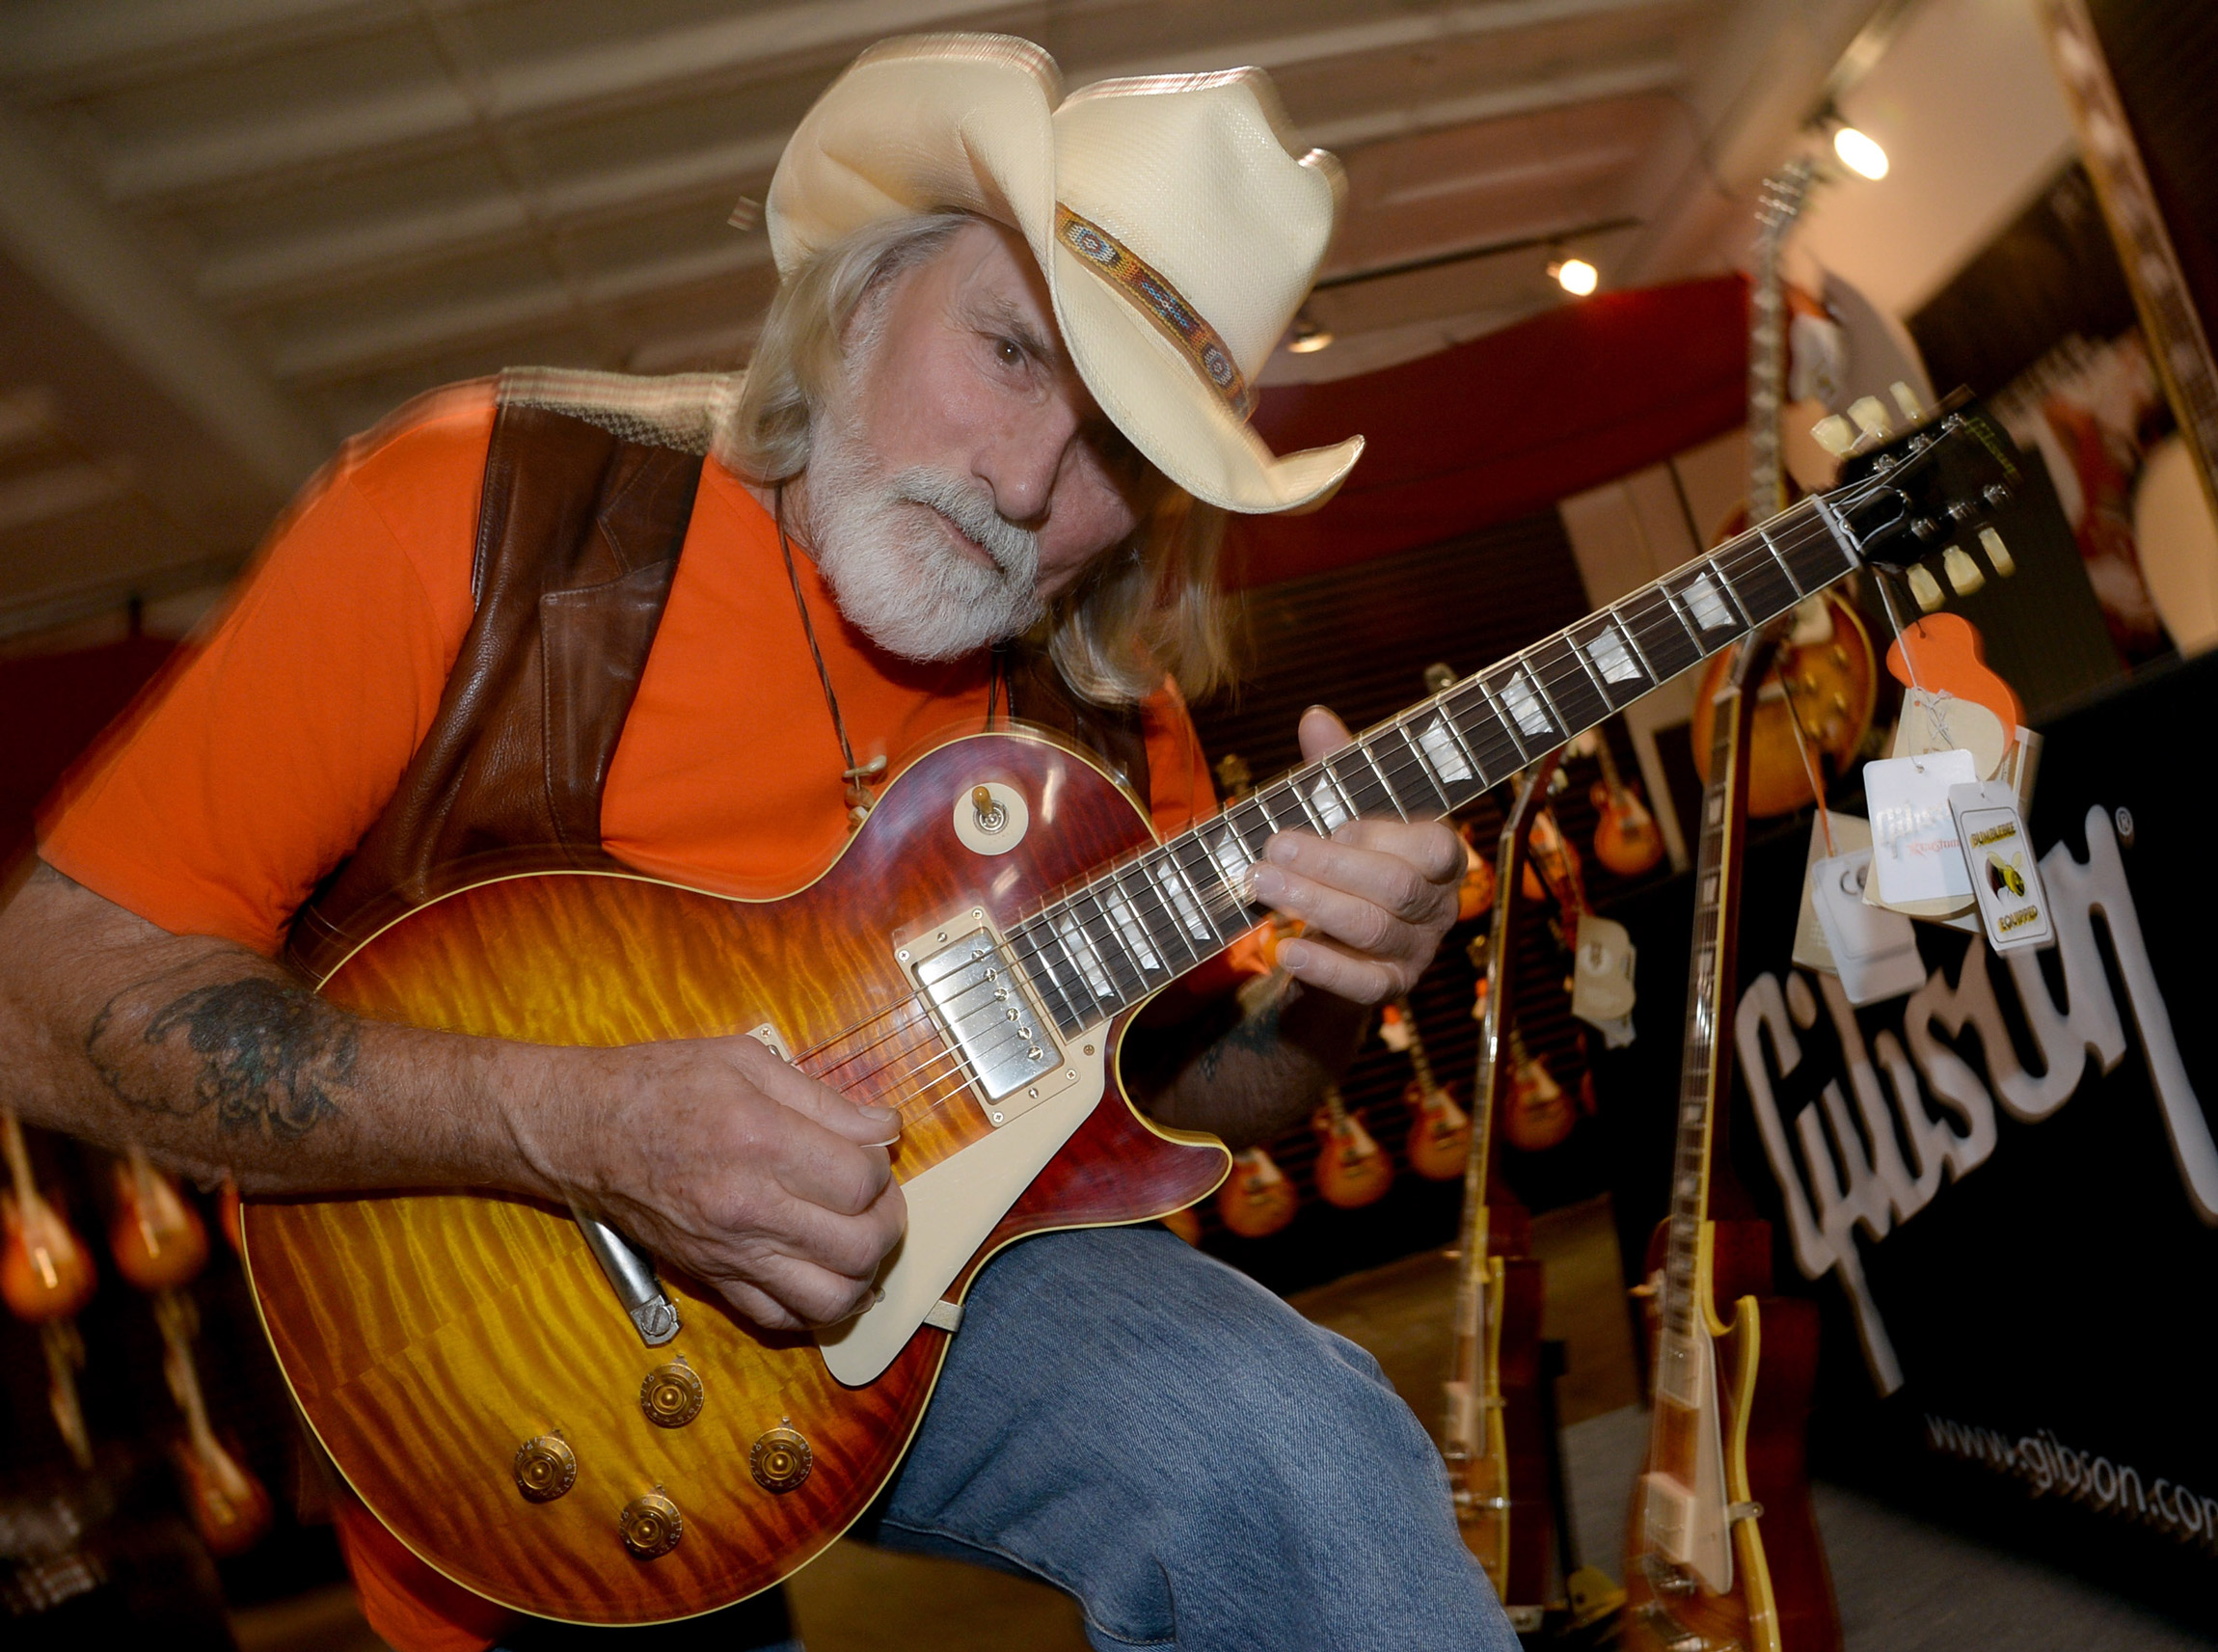 How to Play Like Dickey Betts of the Allman Brothers Band and Great Southern | Guitarworld